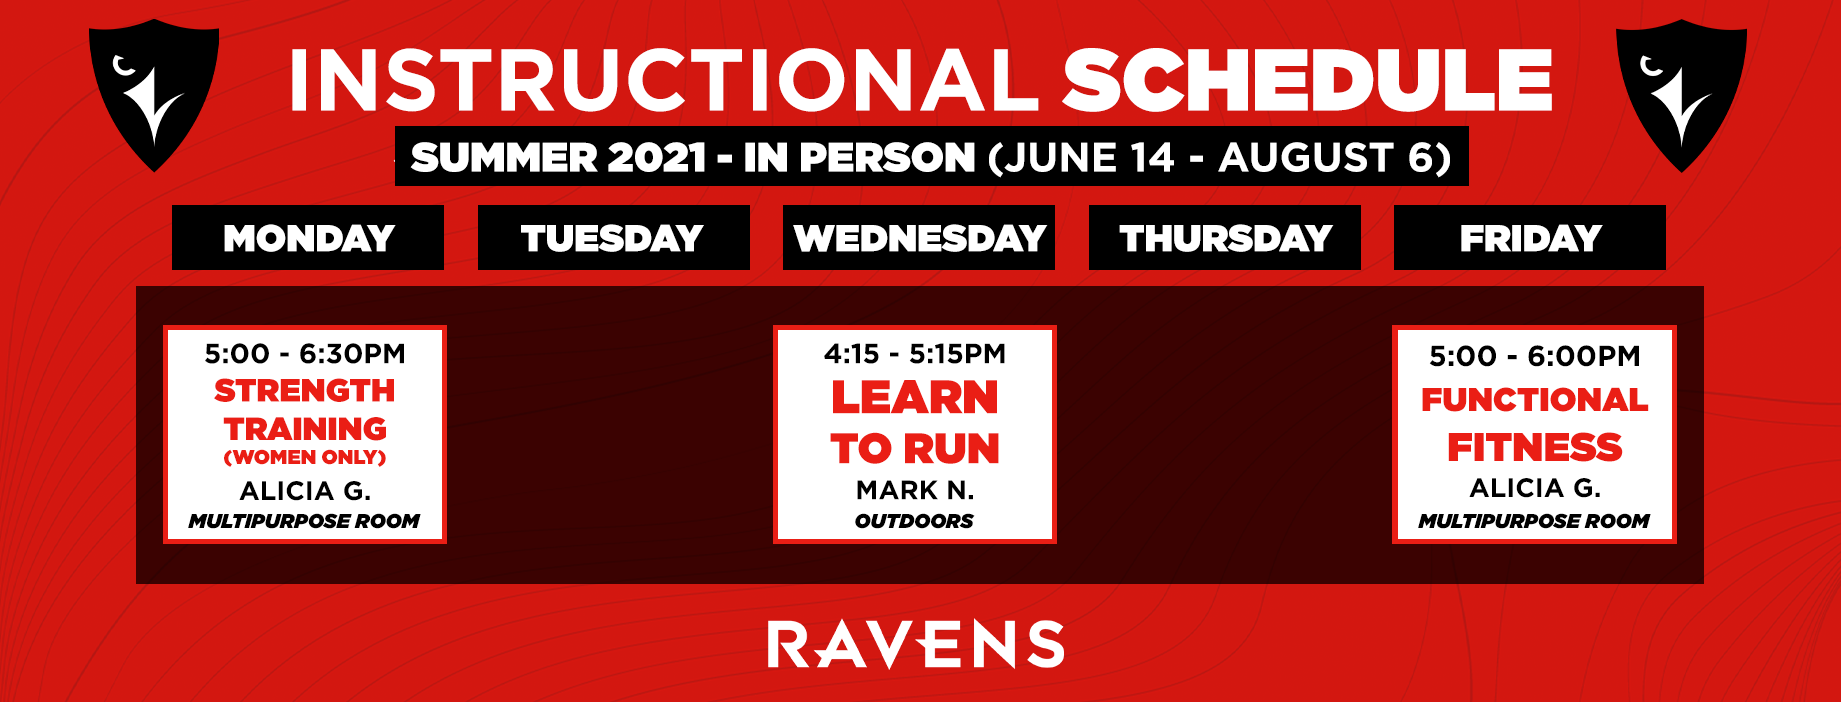 INSTRUCTIONAL SCHED